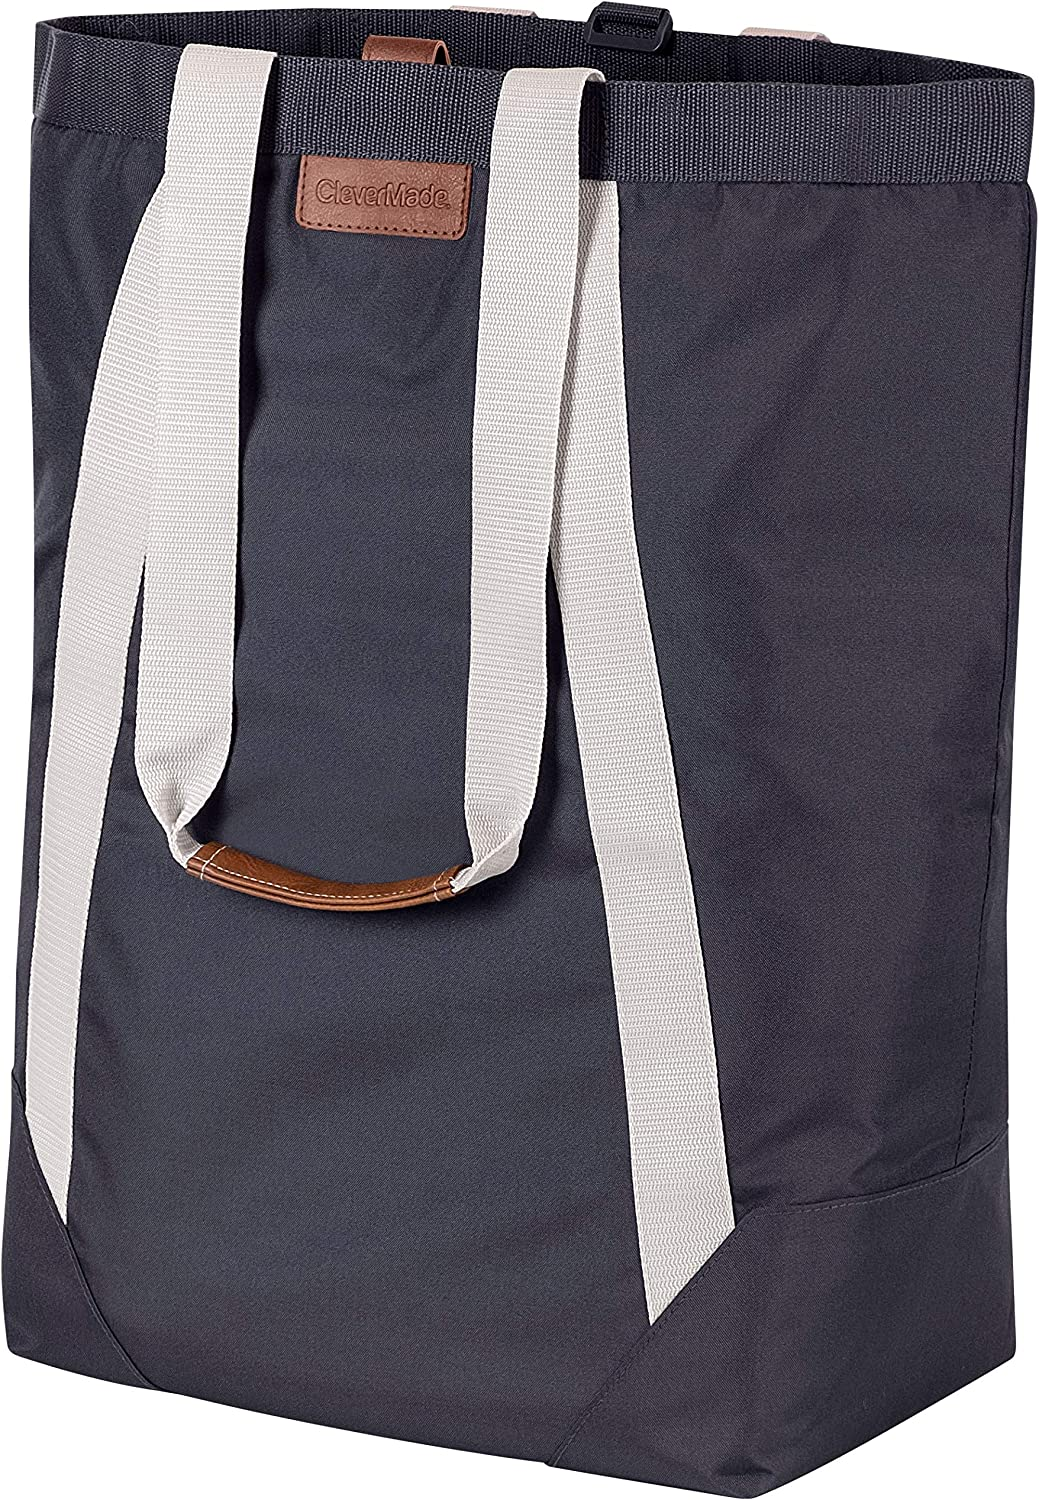 CleverMade Backpack Laundry Bag Tote with Comfortable Shoulder Straps - Extra Large Capacity Polyester Clothes Hamper with Premium Handles and an Inner Zipper Storage Pocket for Valuables, Charcoal